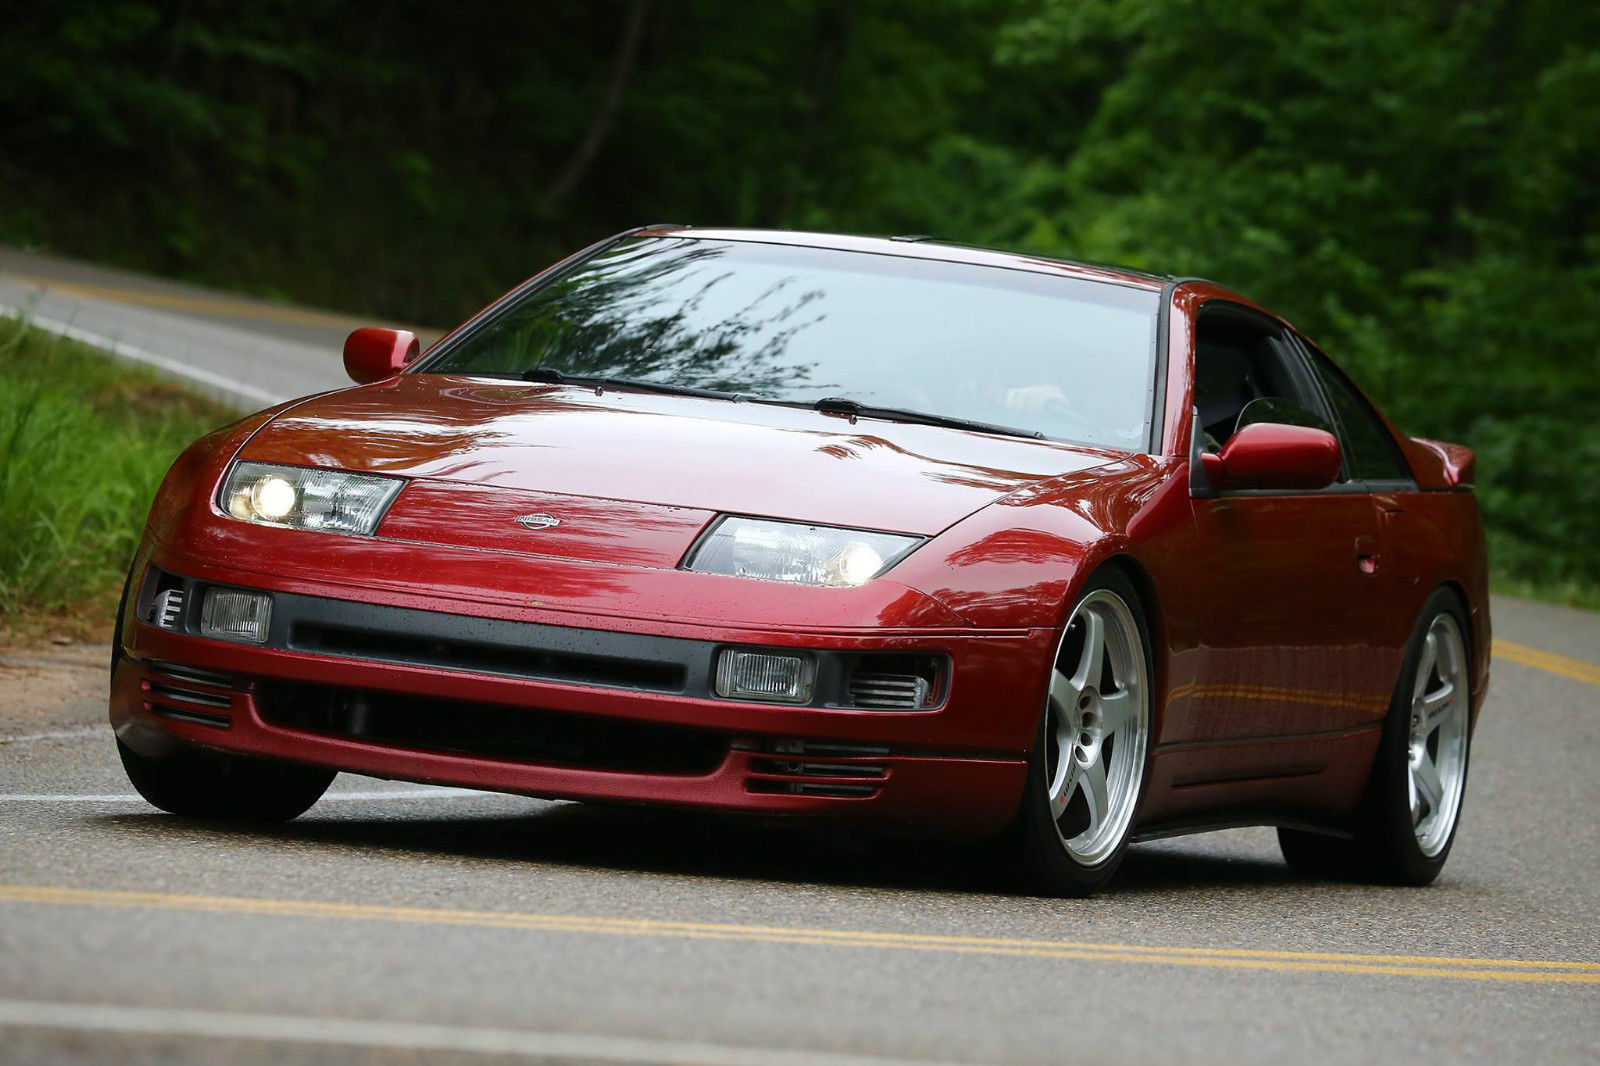 Nissan 300zx For Sale >> 1992 Nissan 300zx Twin Turbo Z32 - Classic Nissan 300ZX 1992 for sale